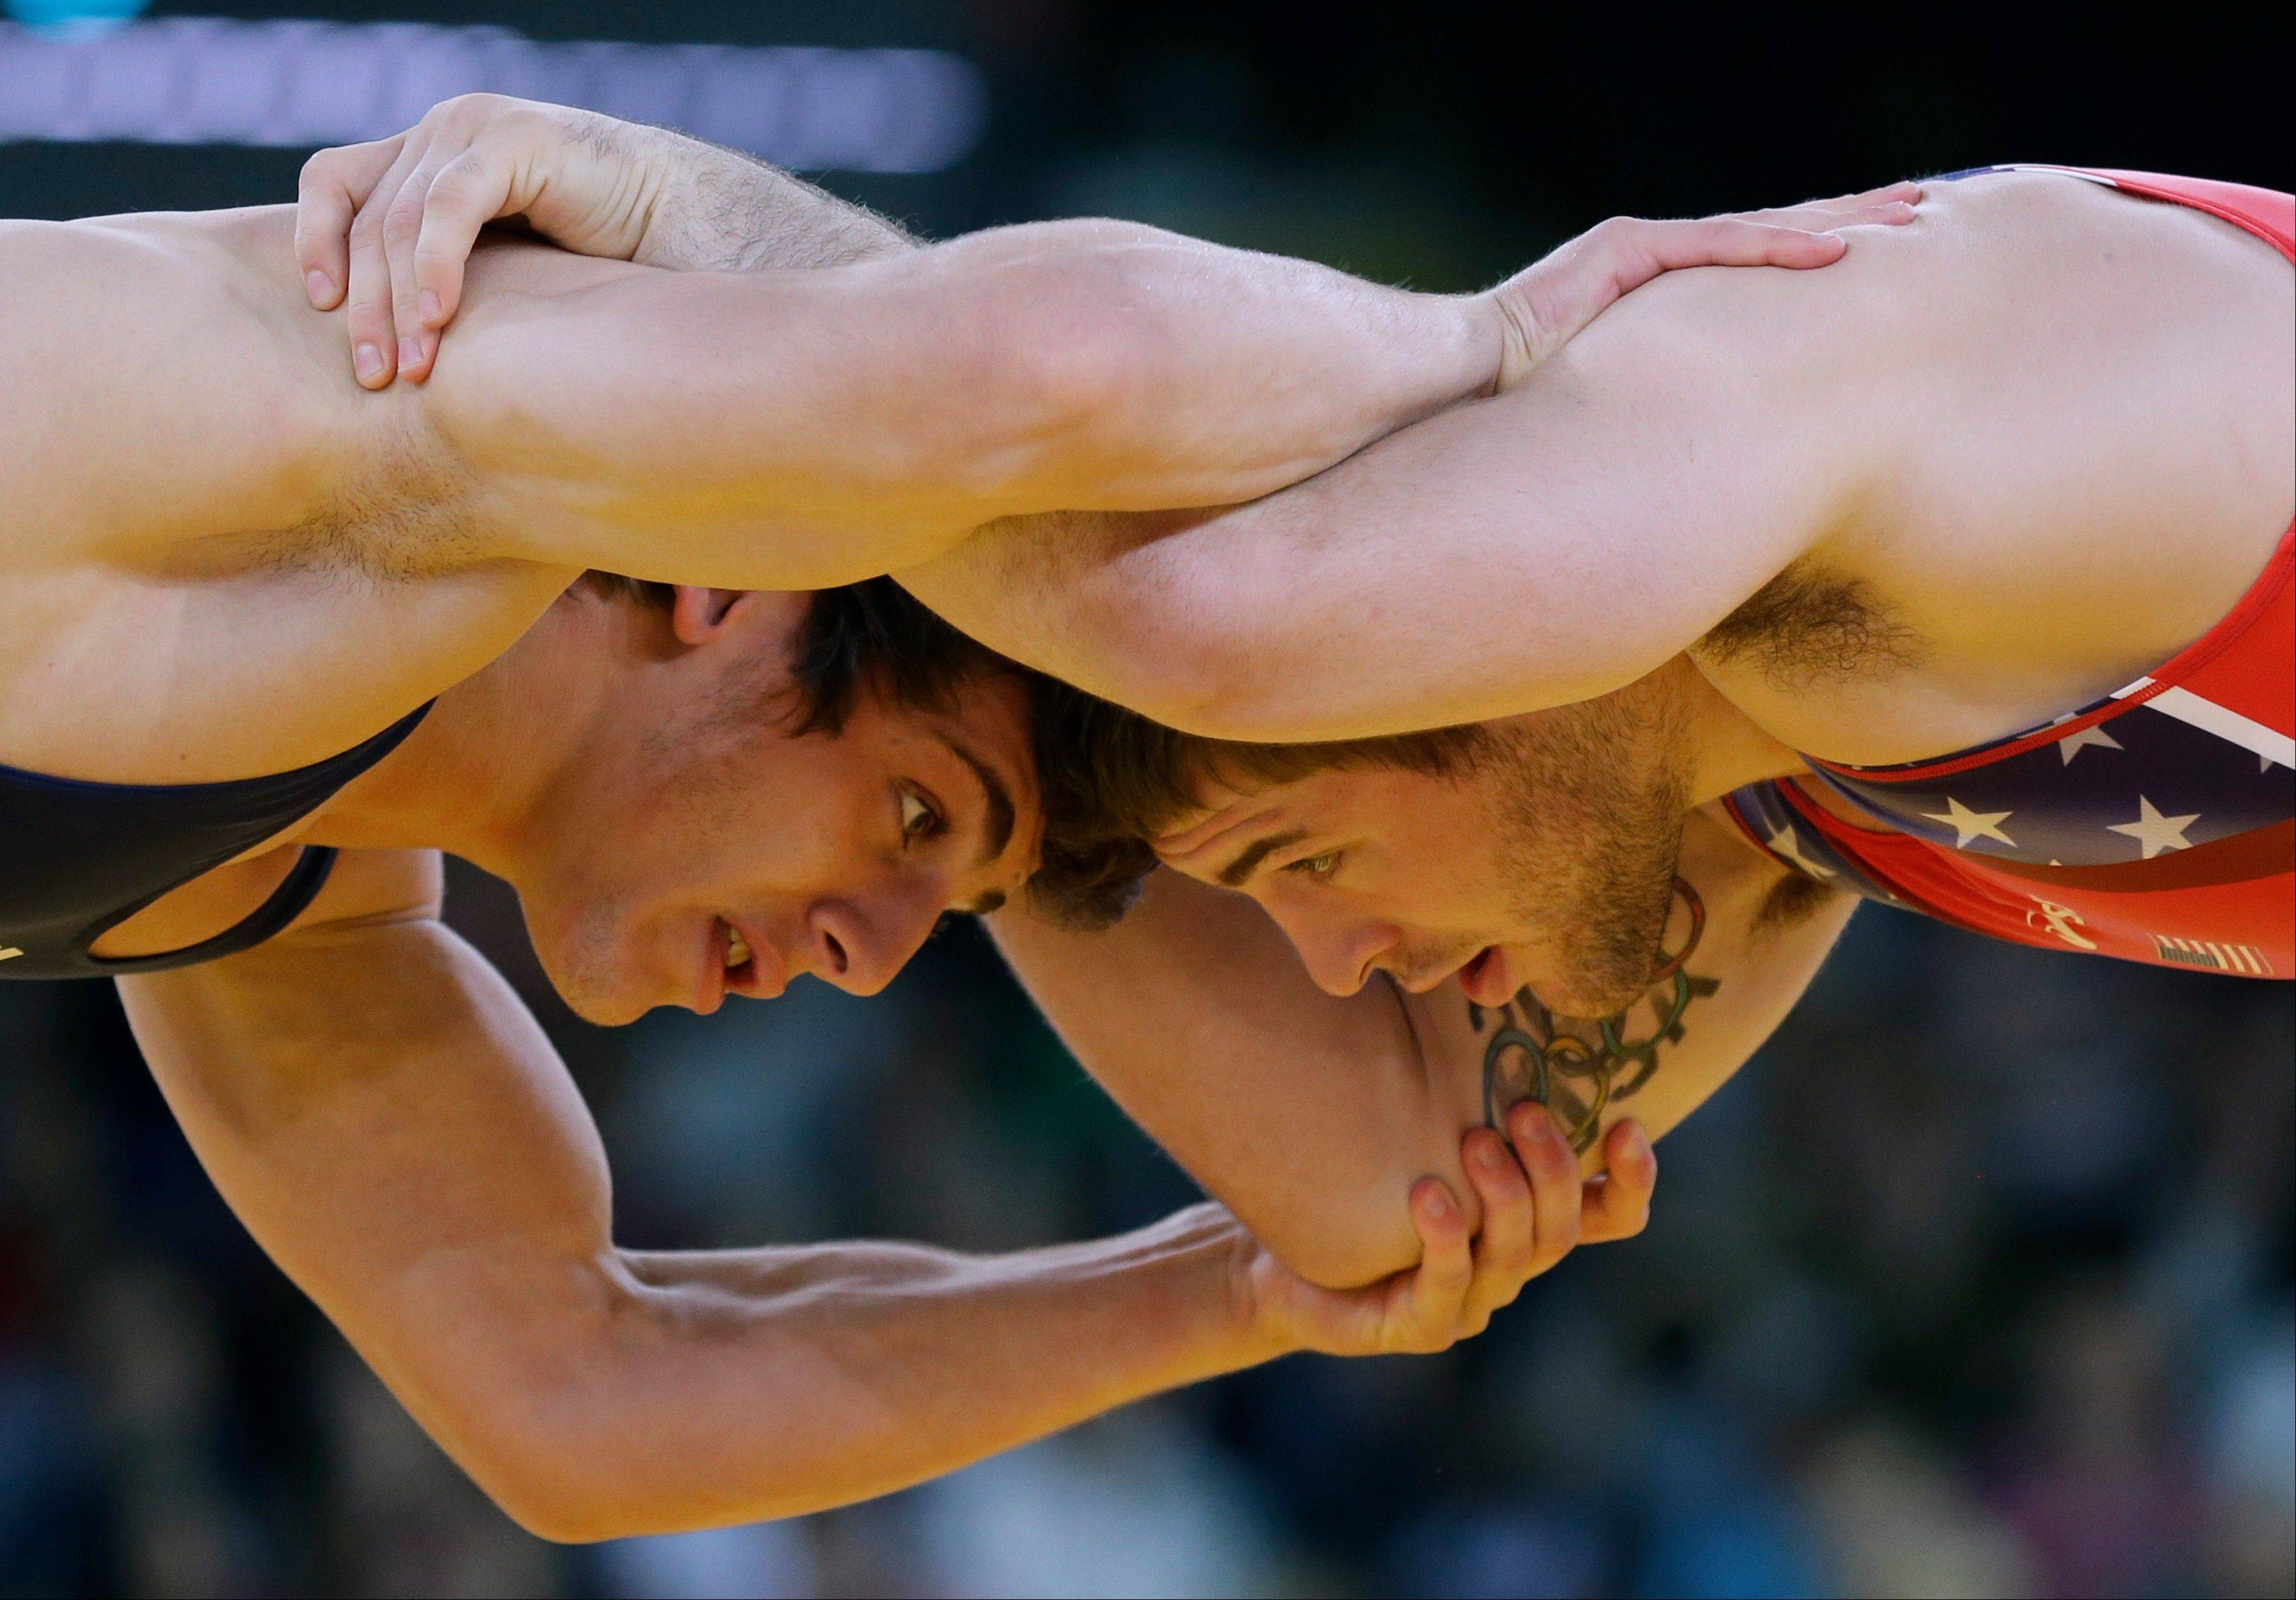 United States' Benjamin Provisor, right, competes with Georgia's Zurabi Datunashvili during the 74-kg Greco-Roman wrestling competition at the 2012 Summer Olympics, Sunday, Aug. 5, 2012, in London.